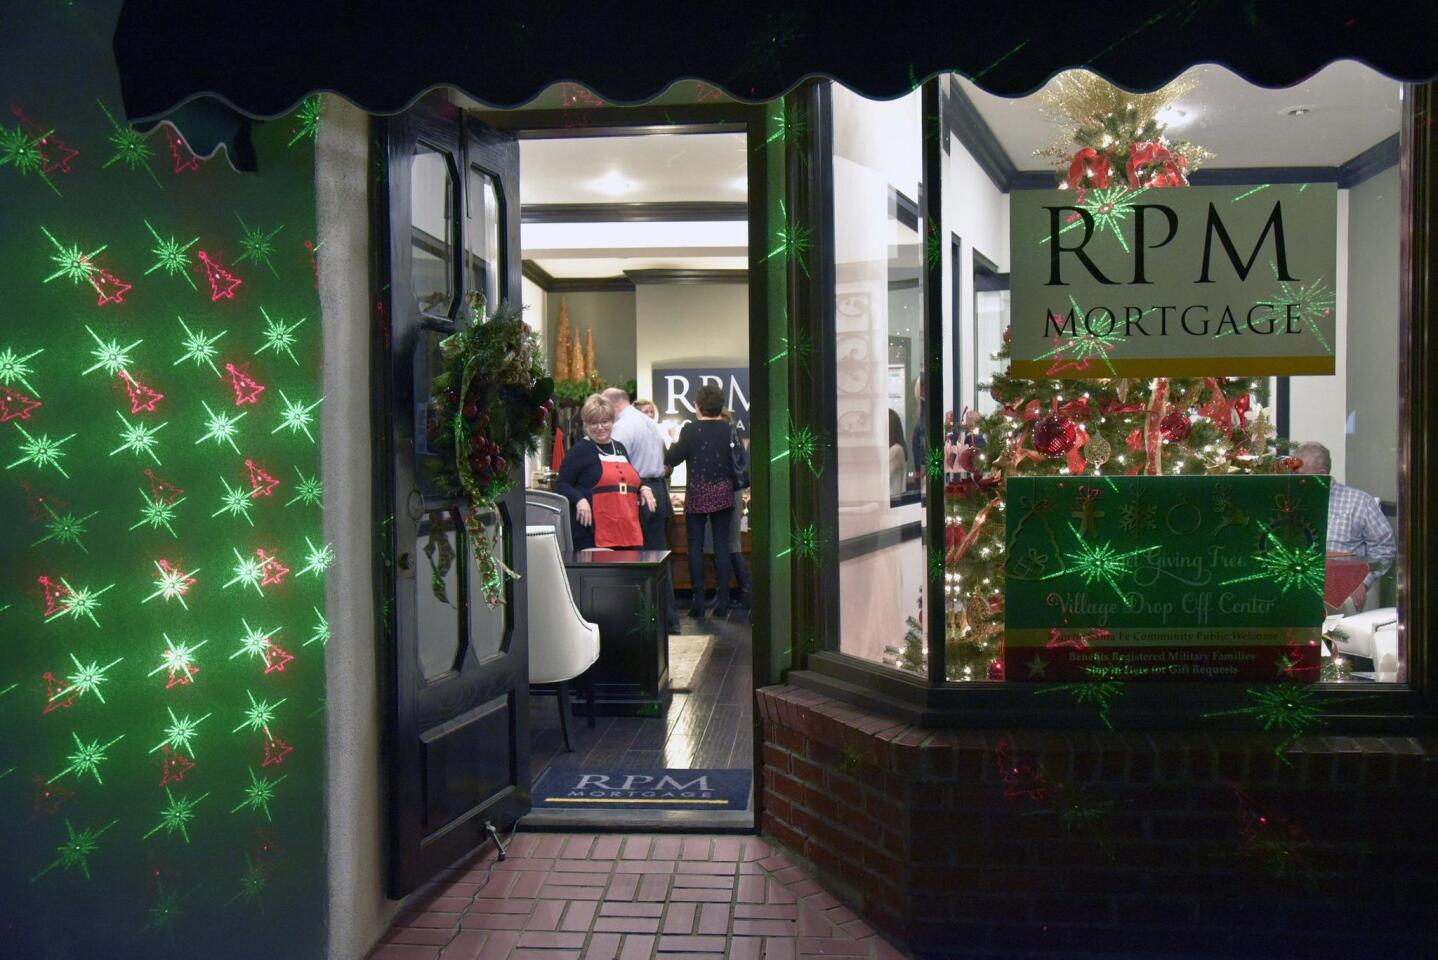 RPM Mortgage at 16921 Via De Santa Fe is the drop off center for the Angel Giving Tree program